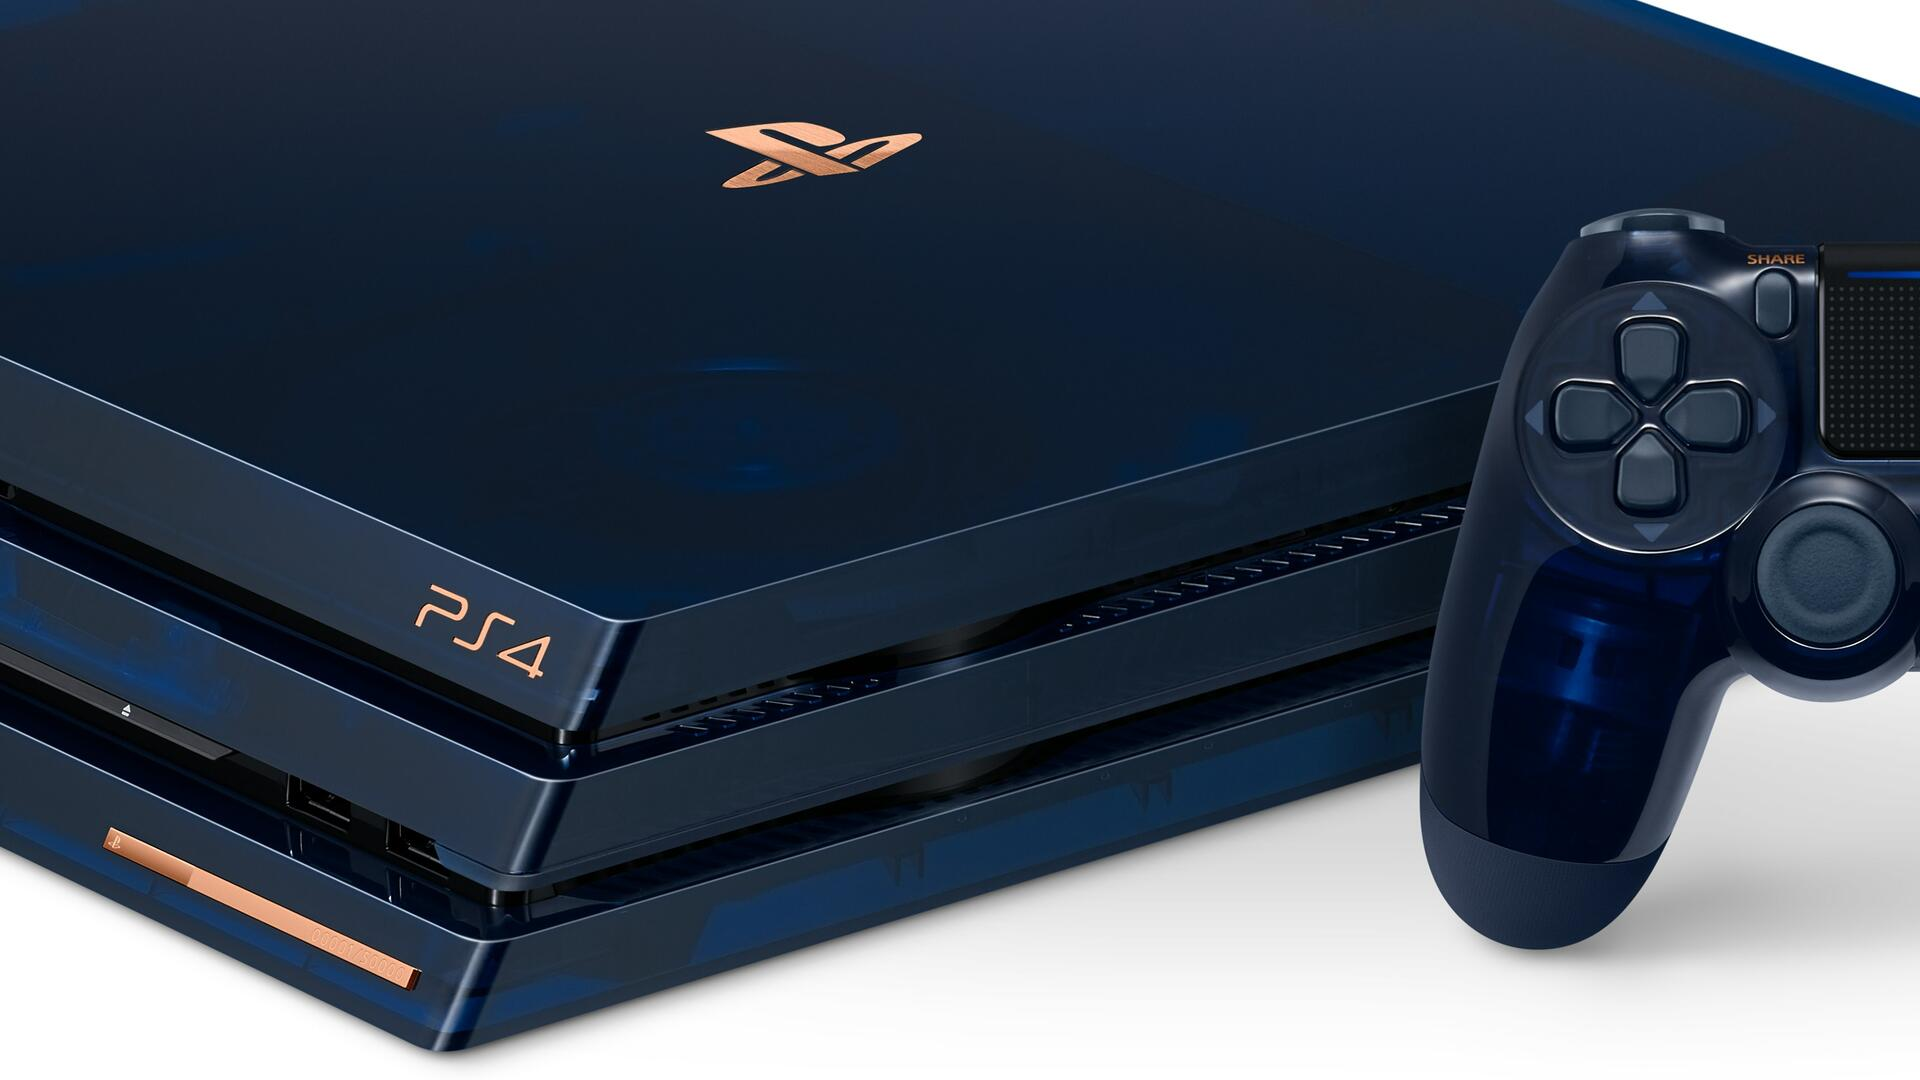 500 Million Limited Edition PS4 Pro Revealed, Features